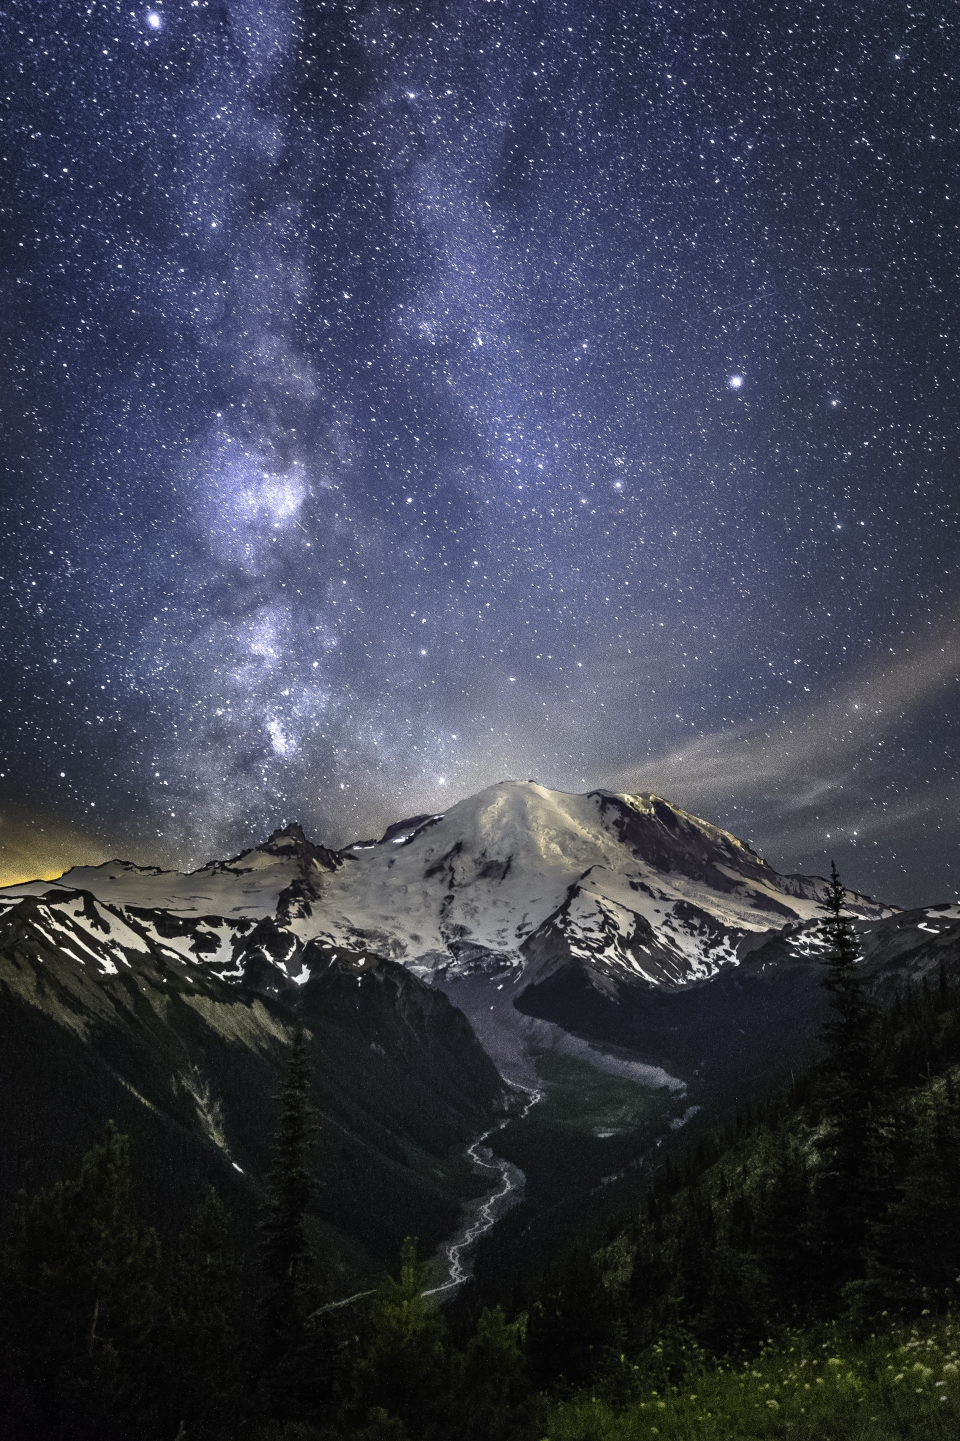 Mount Rainier National Park contest image by Scott Eliot